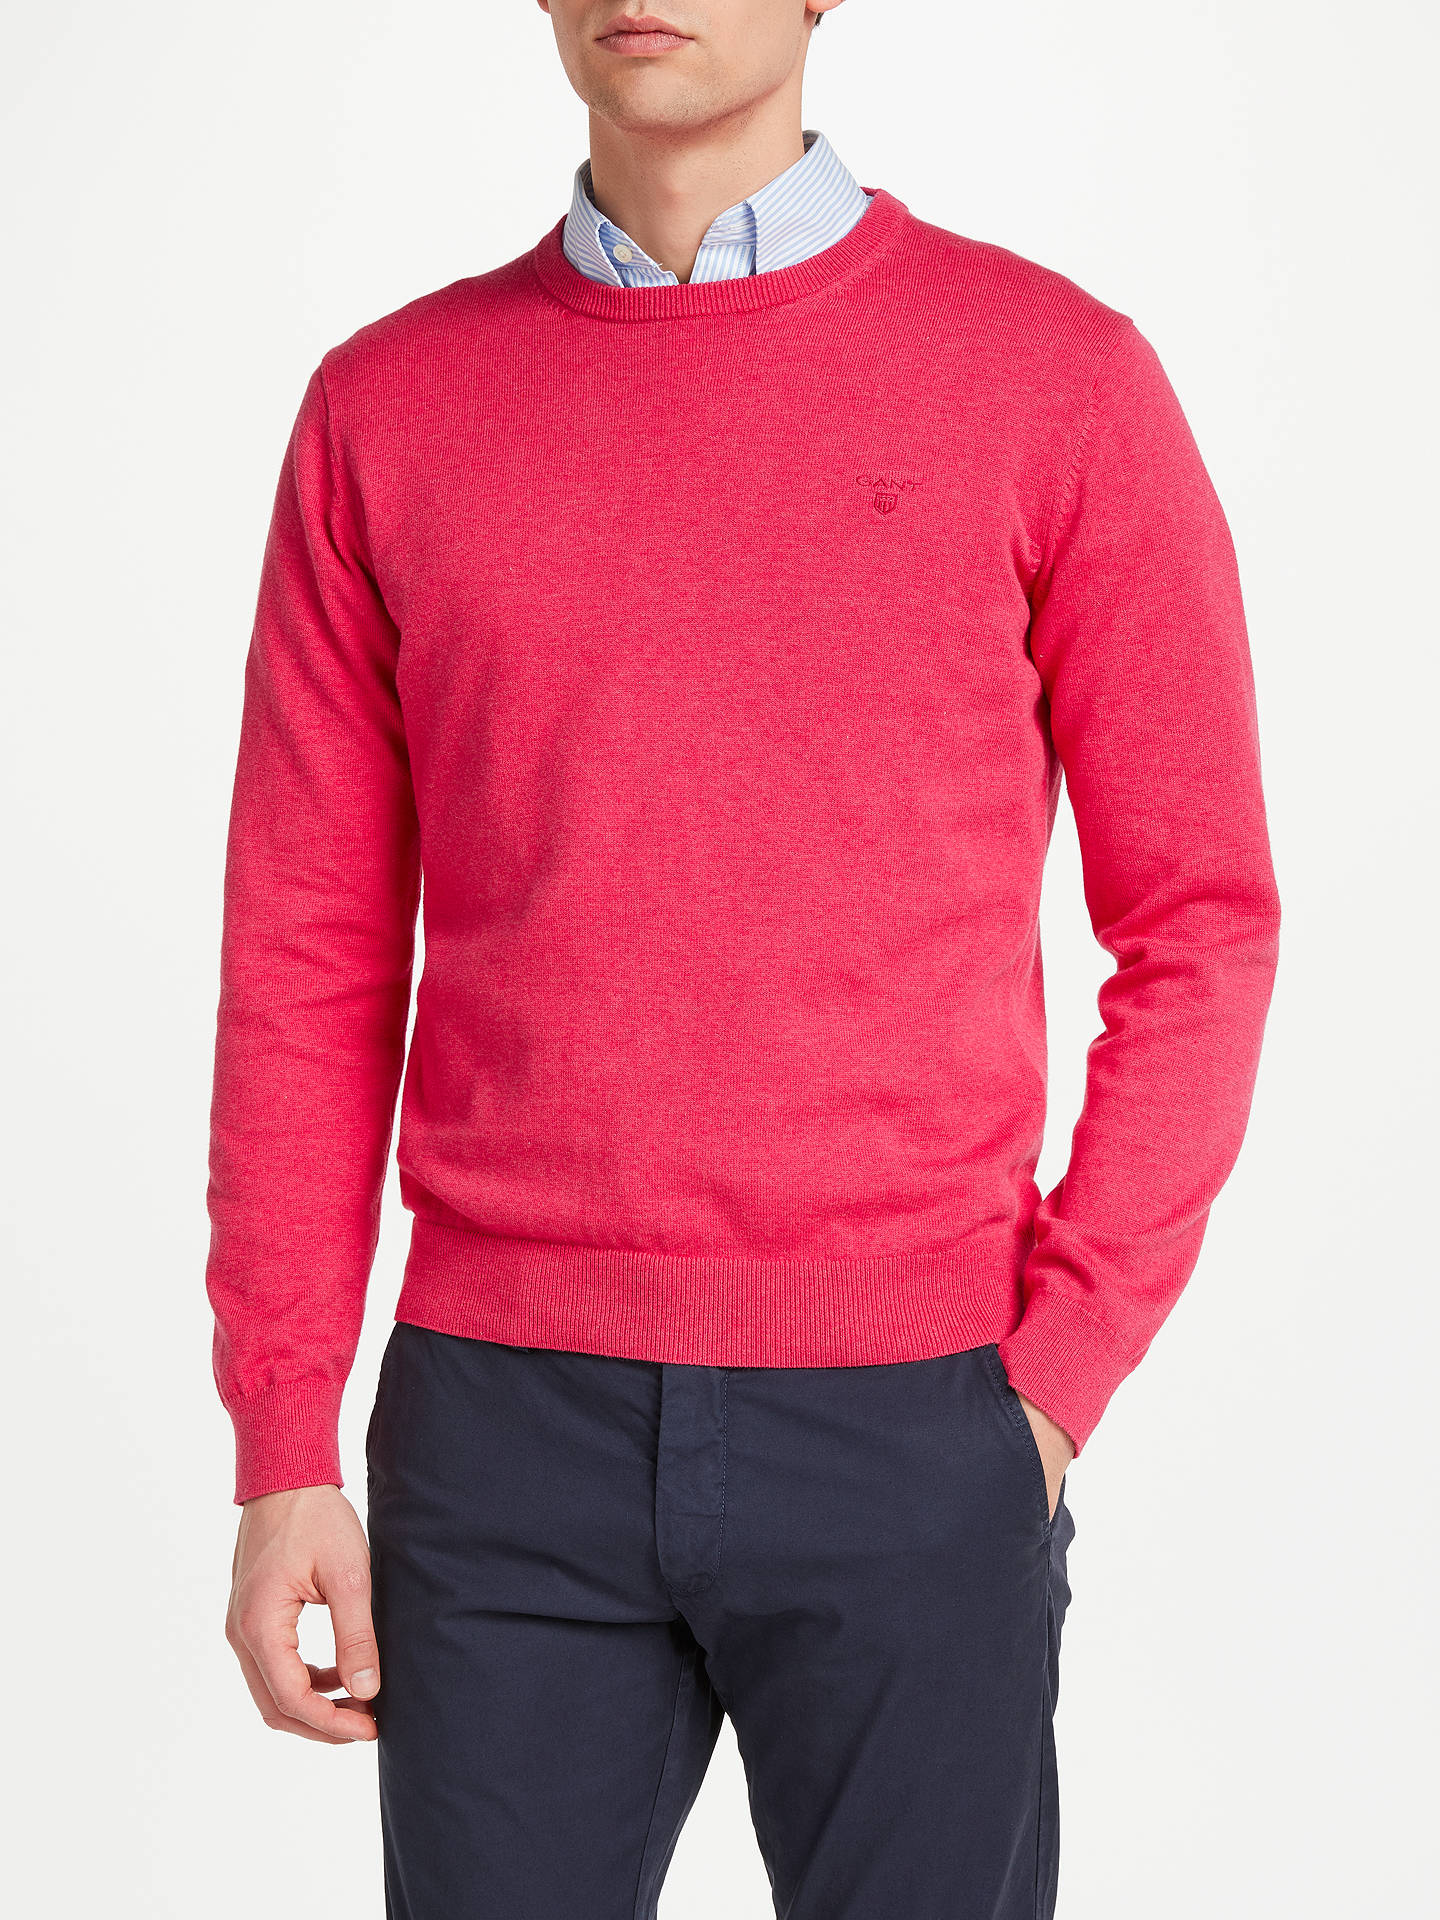 superior quality fashion style classic chic Gant Lightweight Cotton Crew Neck Jumper, Cyclamen Pink at ...